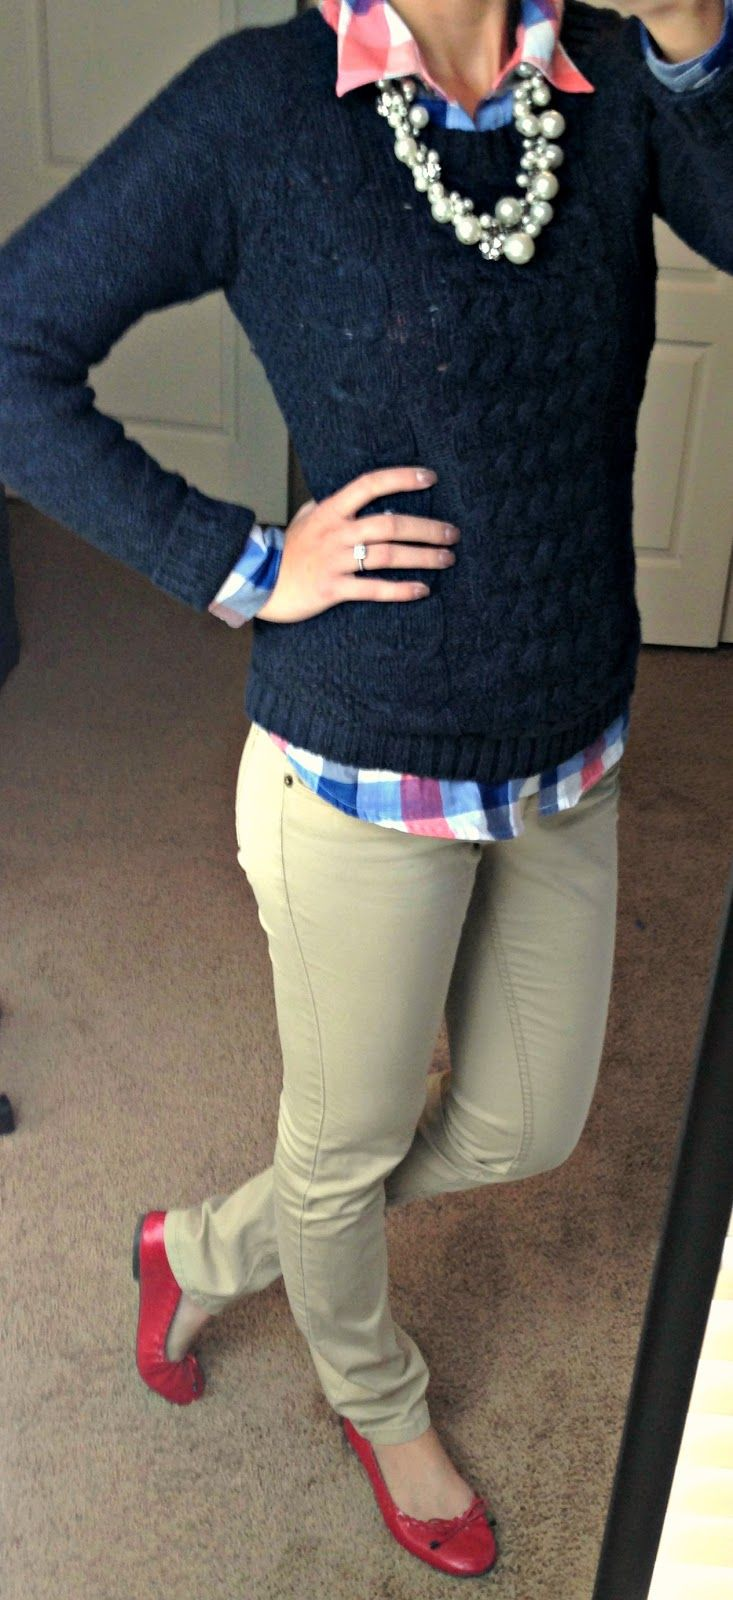 Large gingham shirt, statement necklace, navy cable knit, khakis, red flats. Cute!